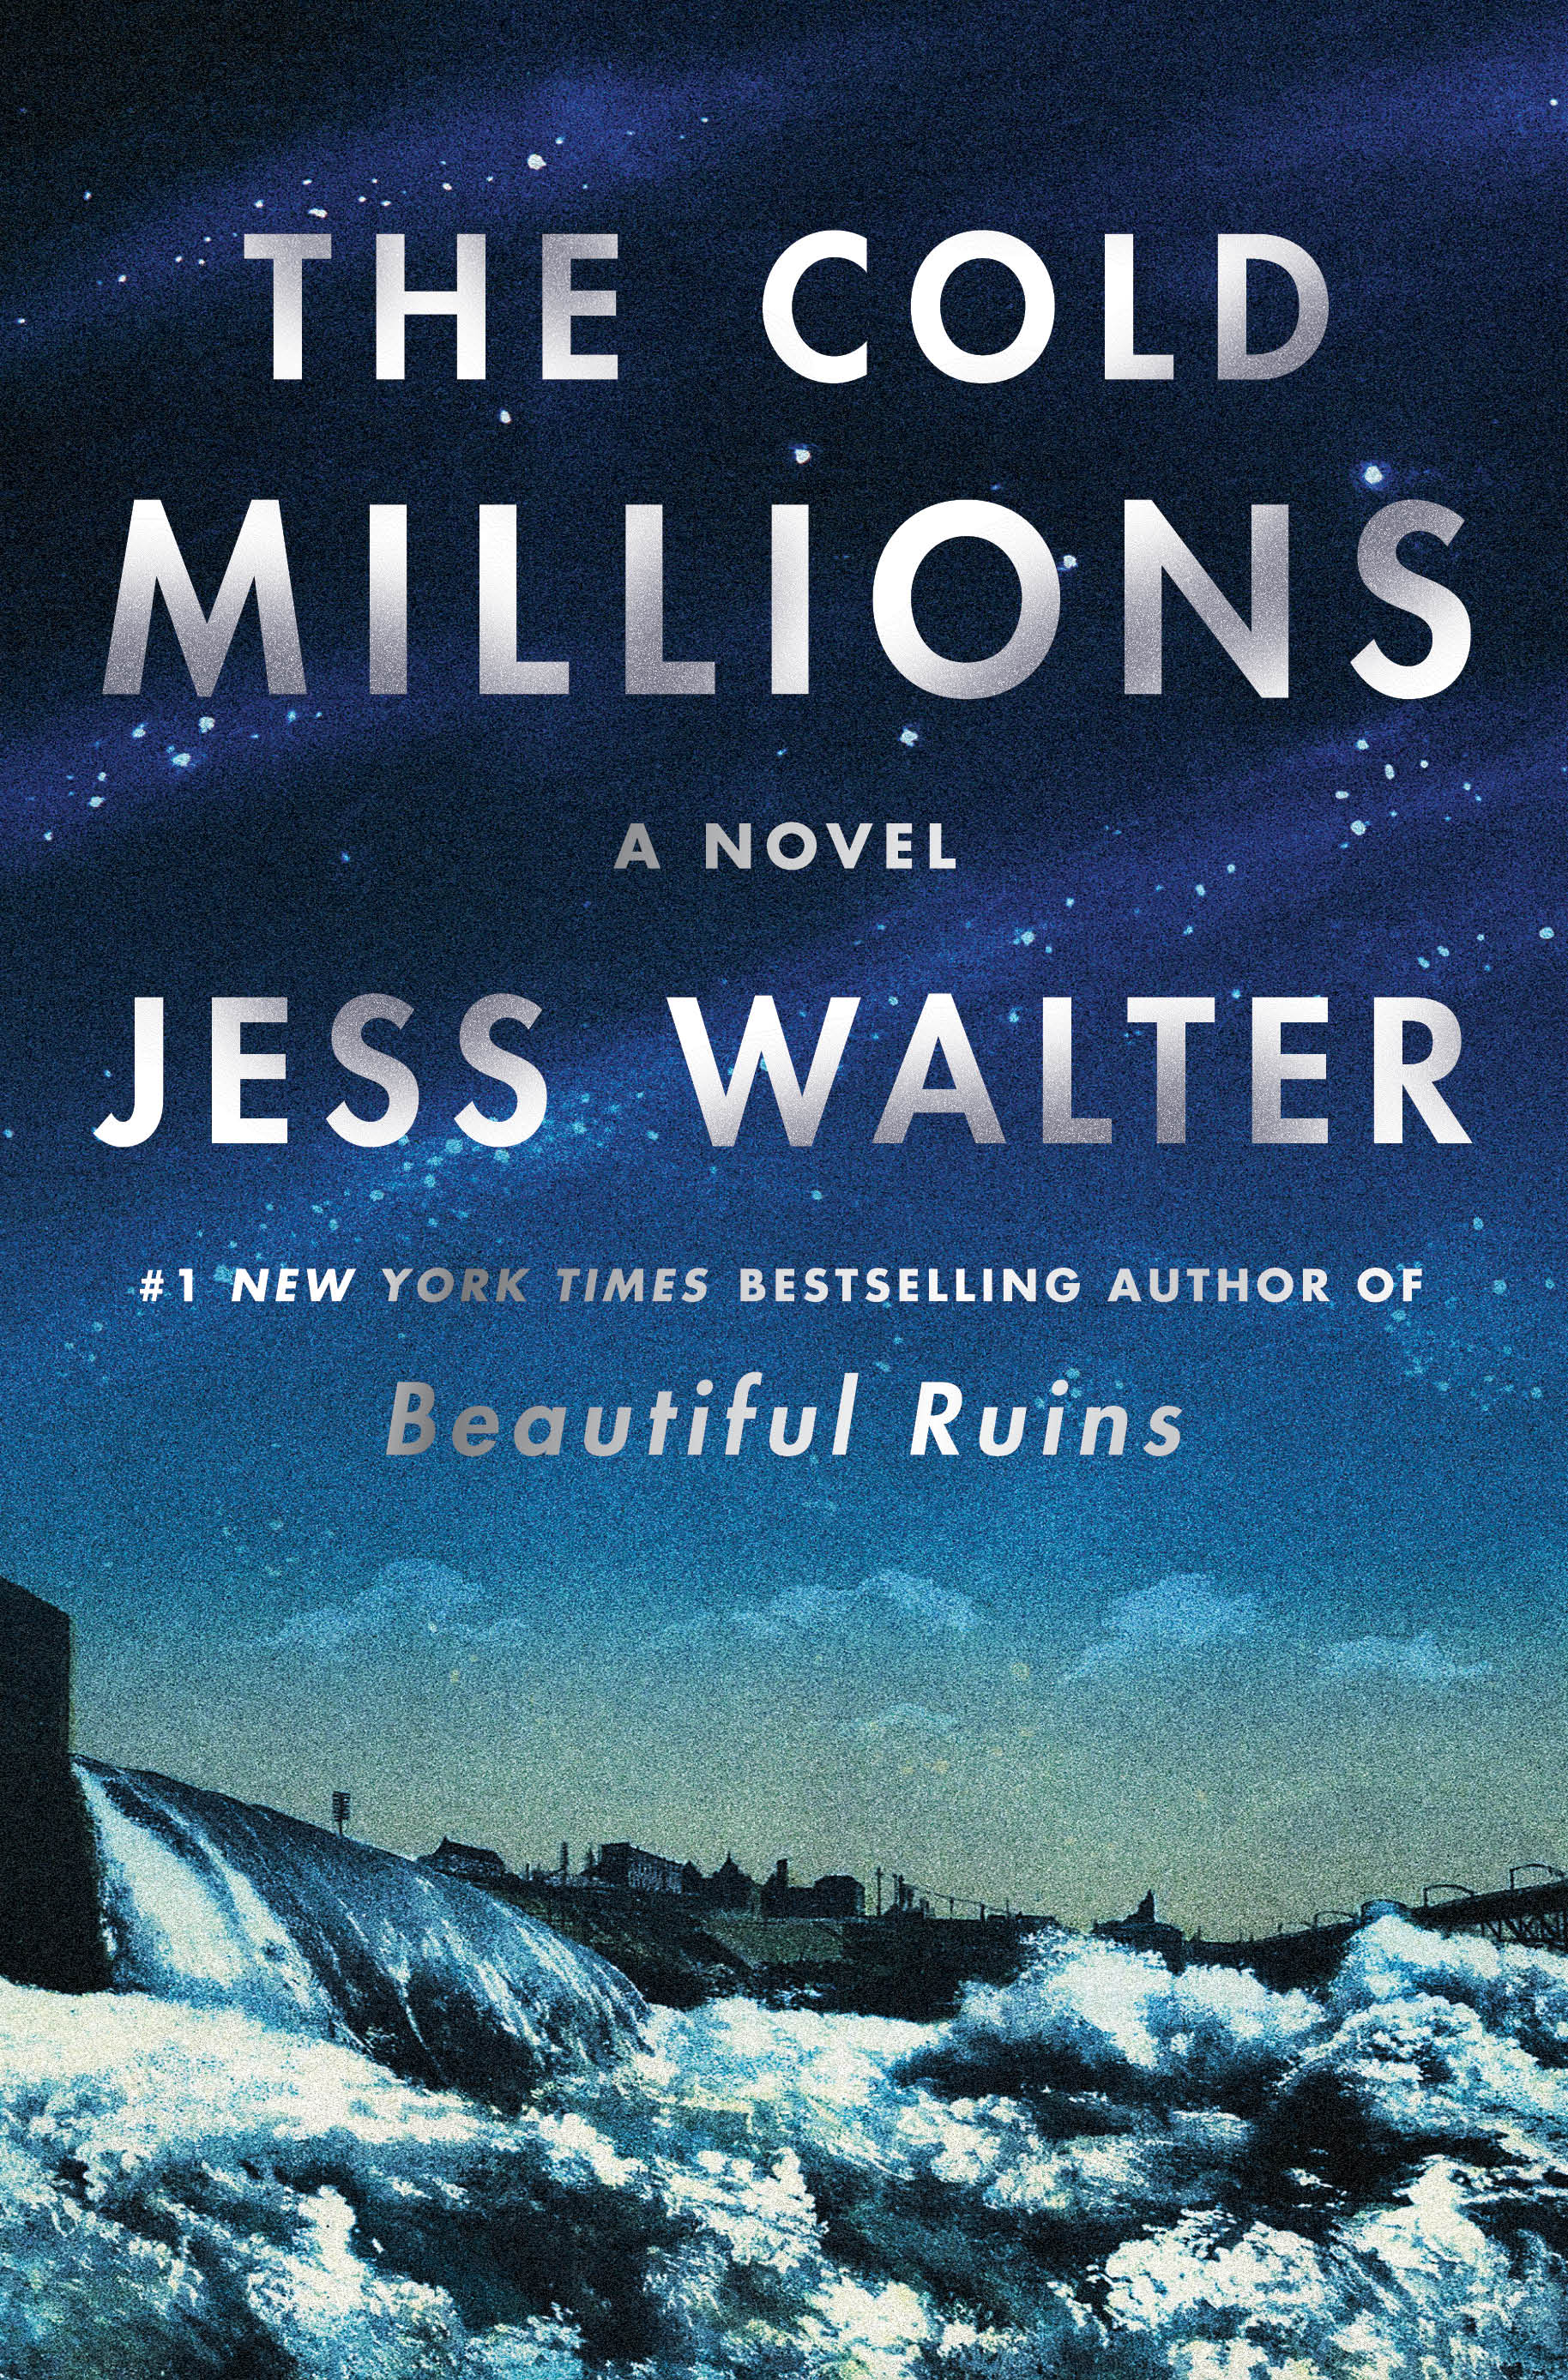 """""""The Cold Millions,"""" by Jess Walter • Release date: Oct. 27 • The author of """"Beautiful Ruins"""" returns with a story of two orphaned brothers in the early 20th century who encounter vagrants, suffragettes, vaudevillians and an assortment of other characters on their adventures."""